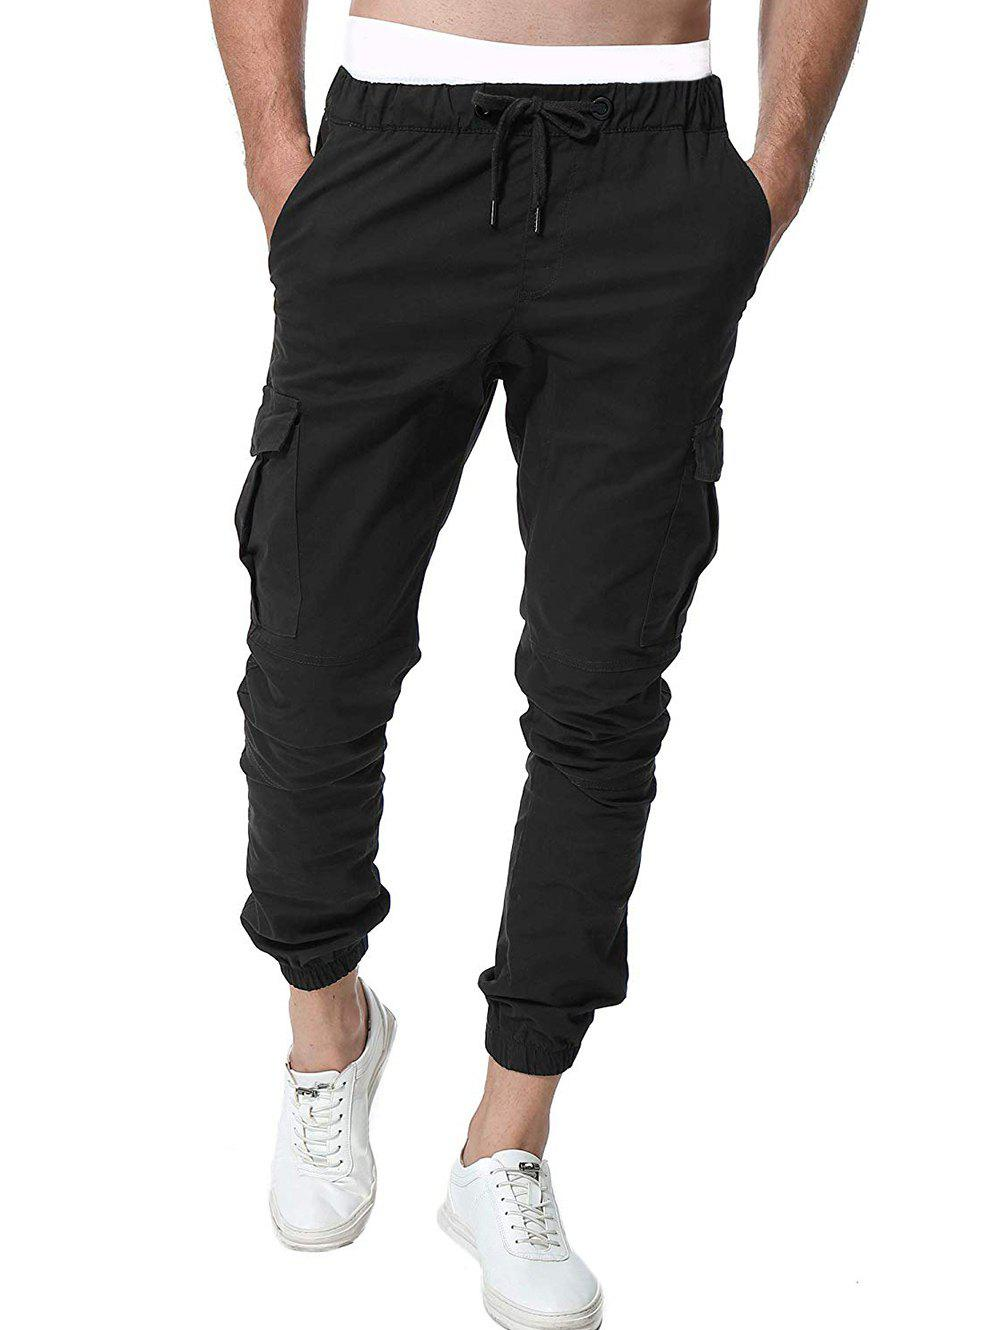 Buy Pocket Design Drawstring Jogger Pants